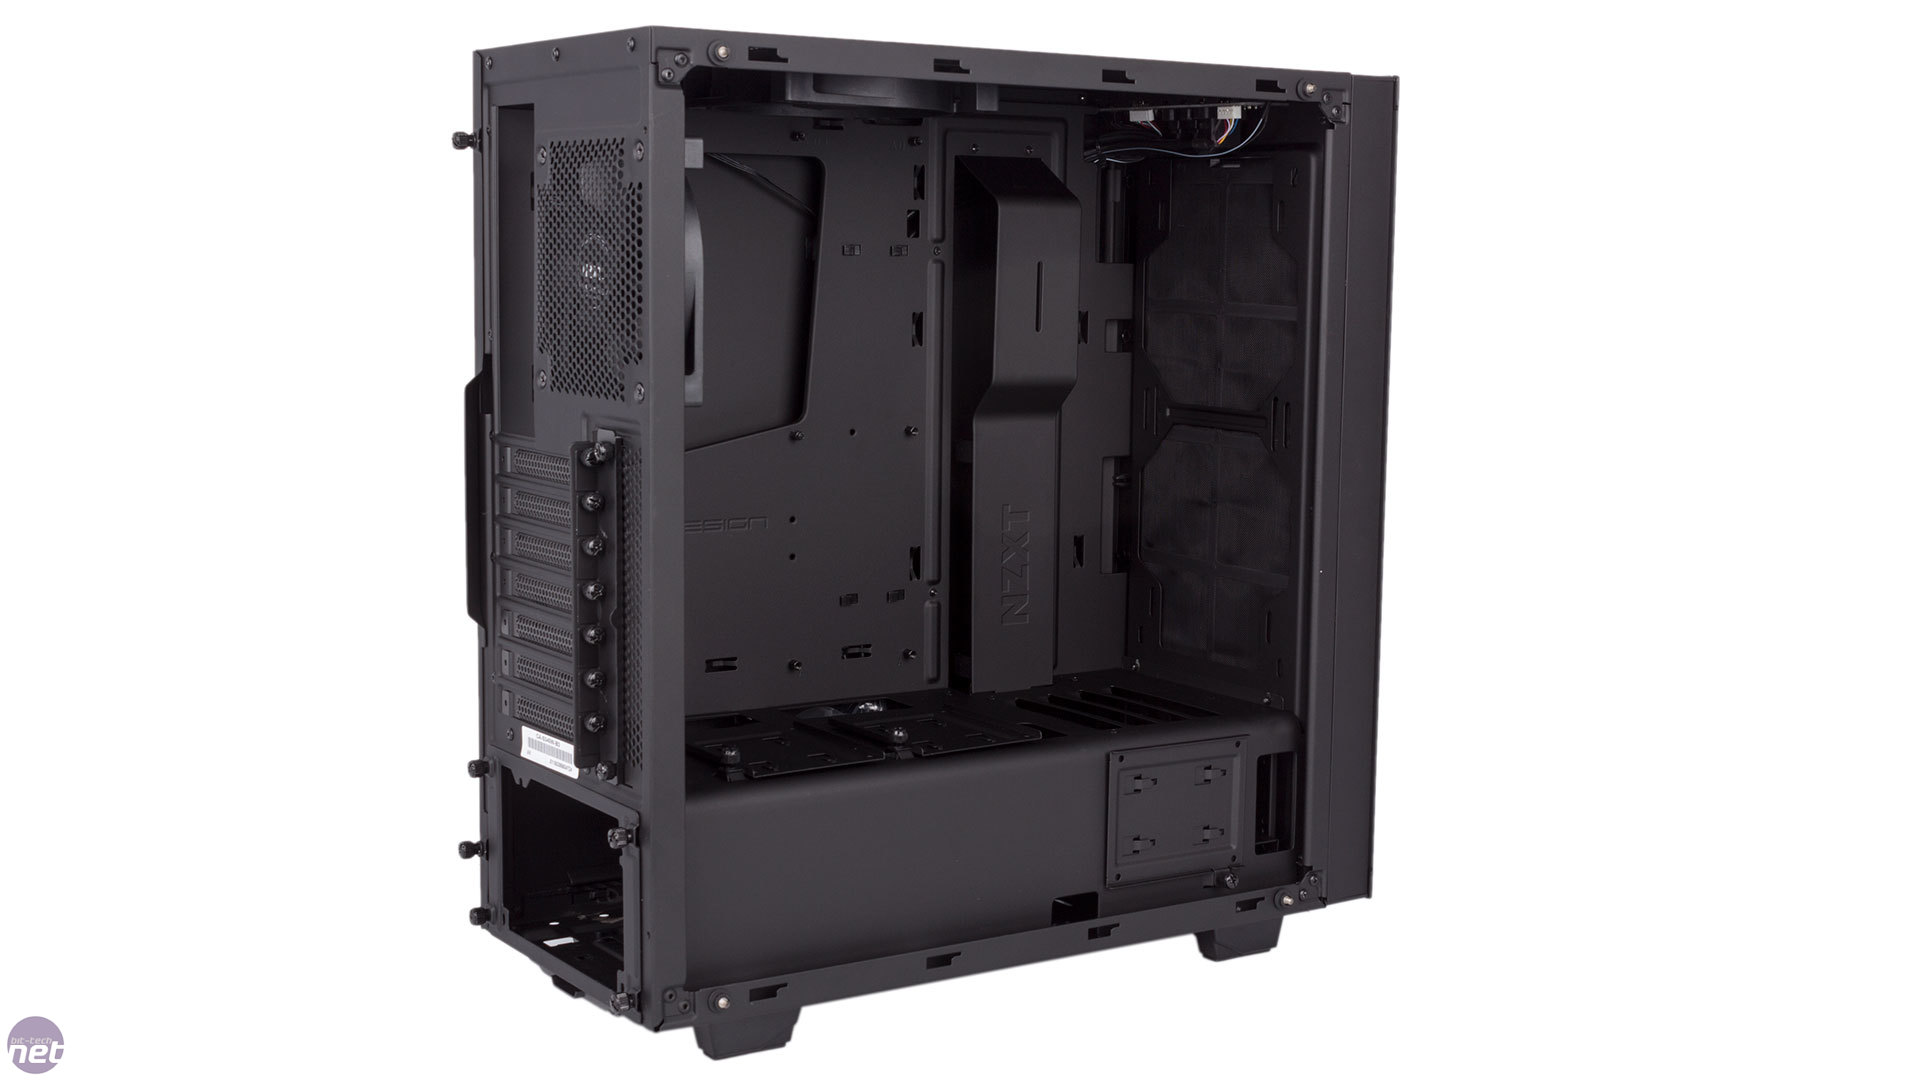 Nzxt S340 Elite Review Bit Tech Net